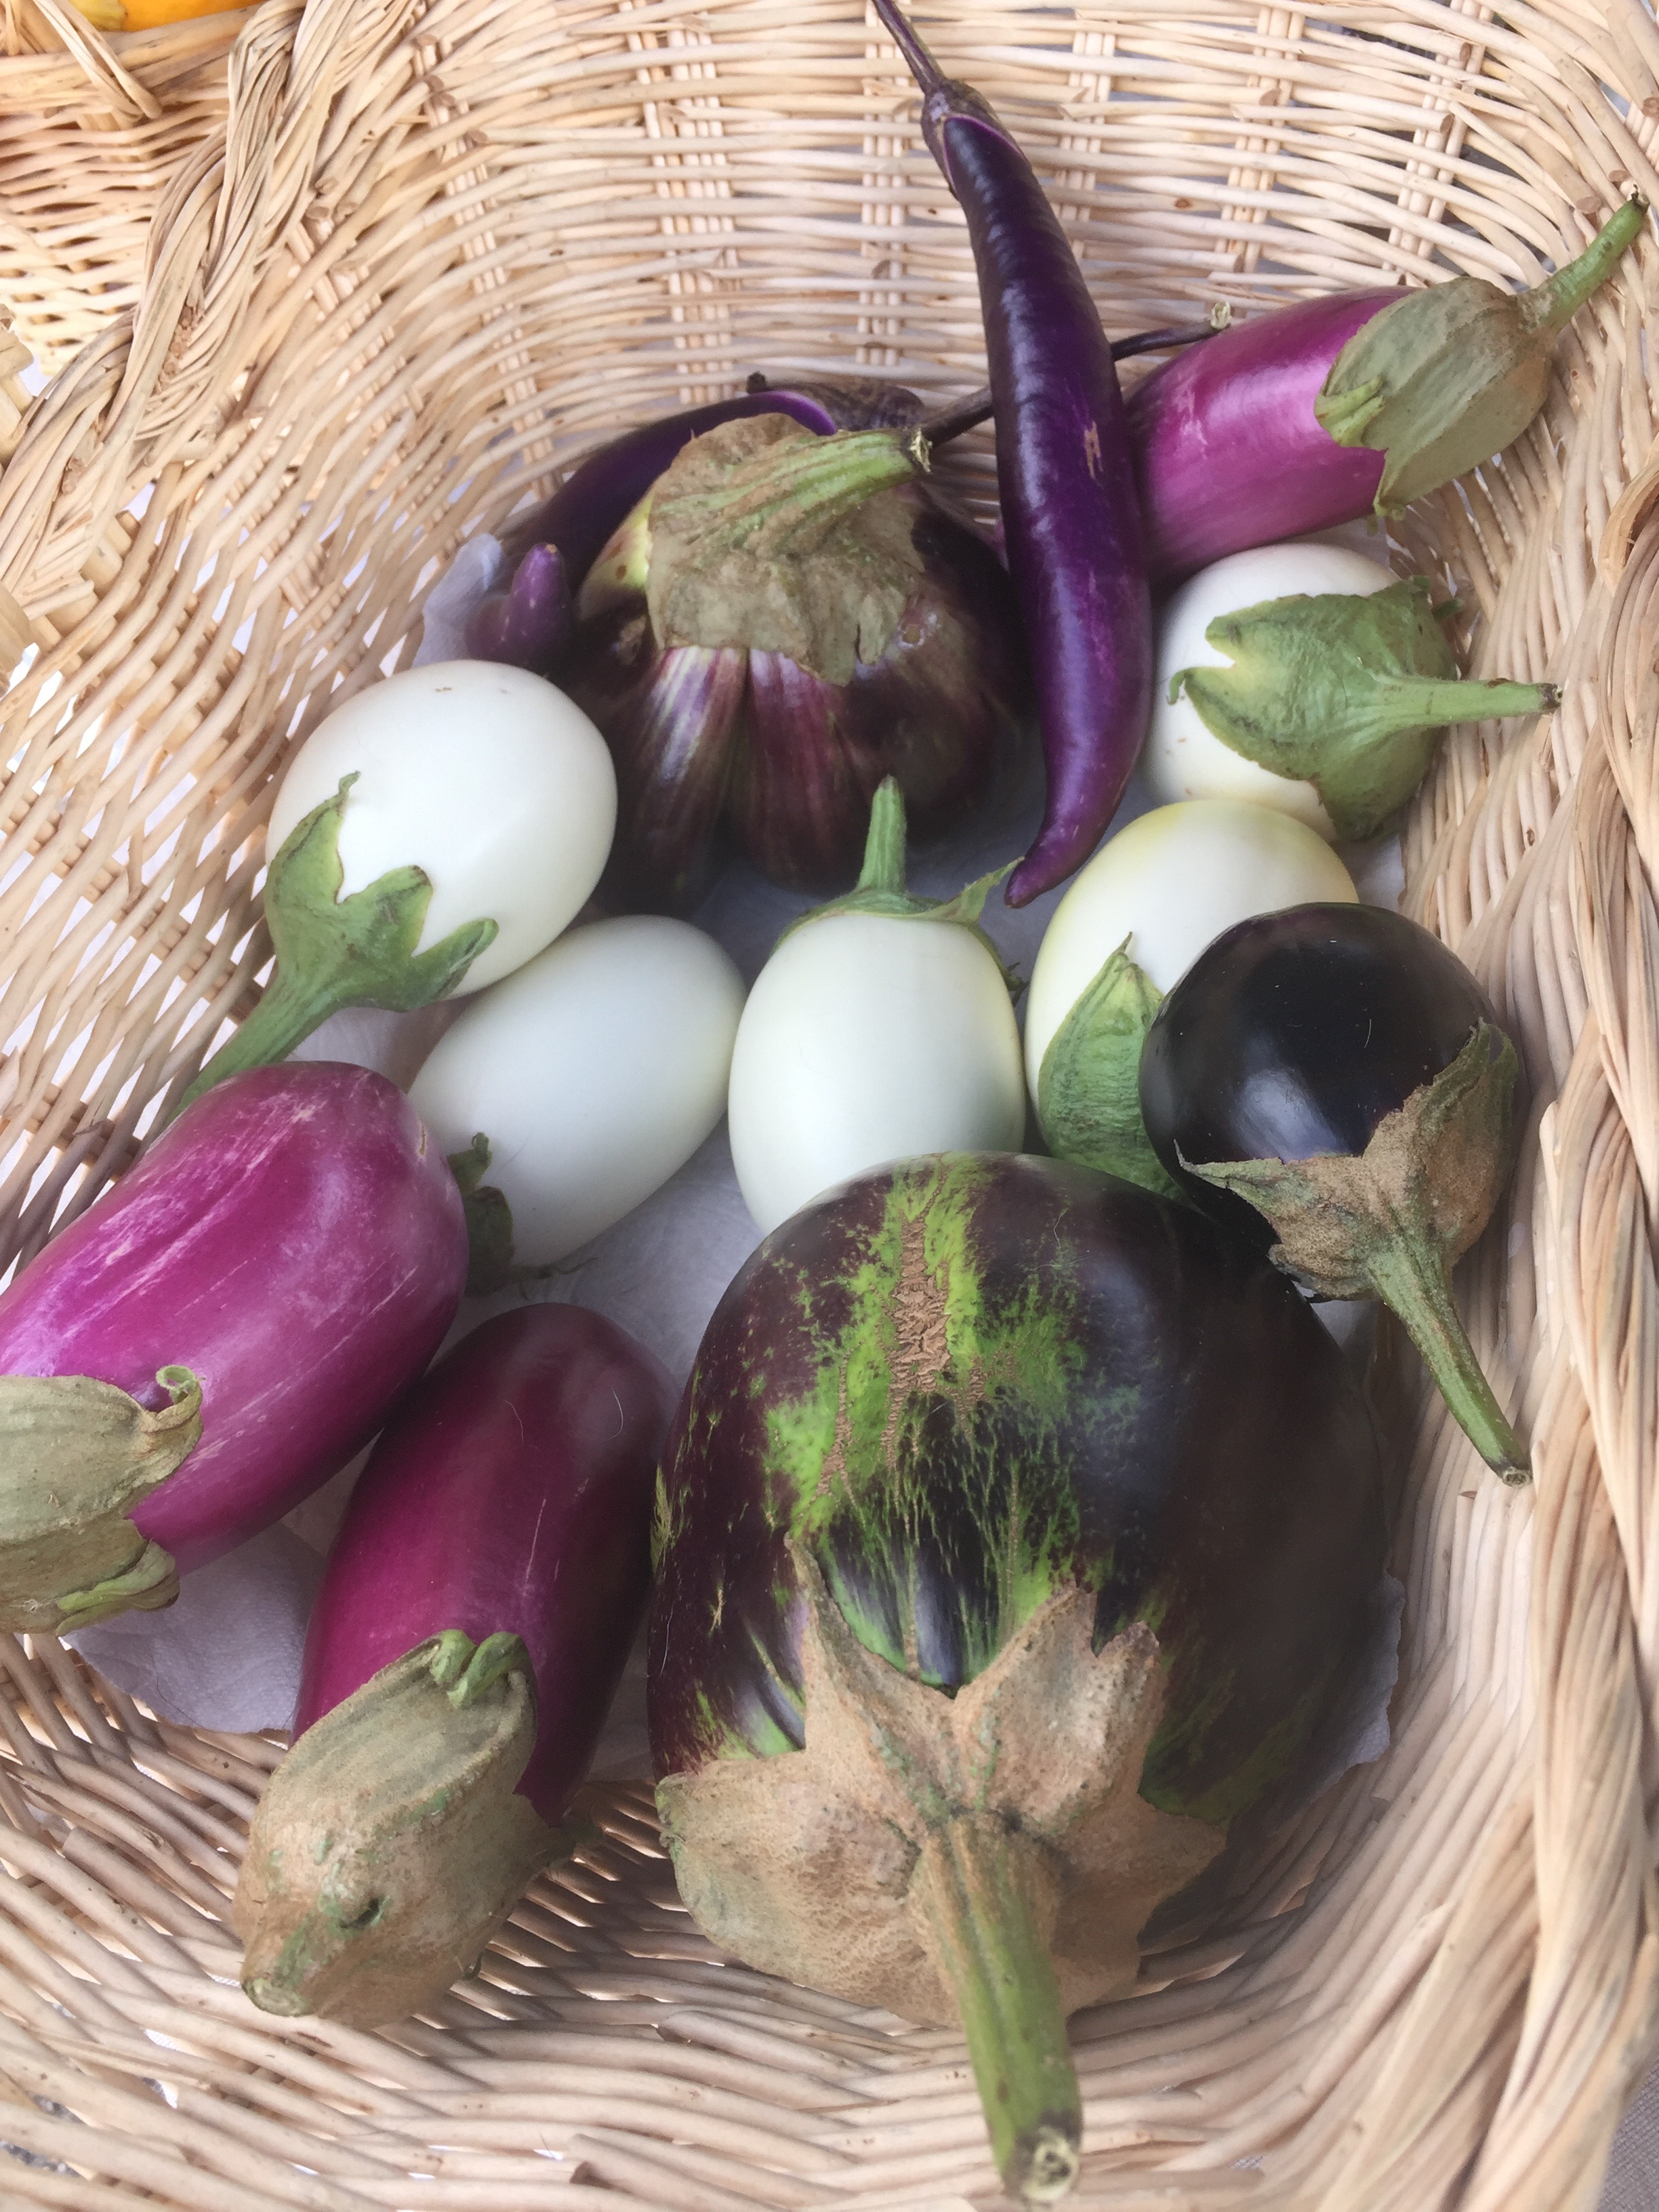 Japanese White Egg, Rosita, New York Improved and Japanese Pickling Eggplants